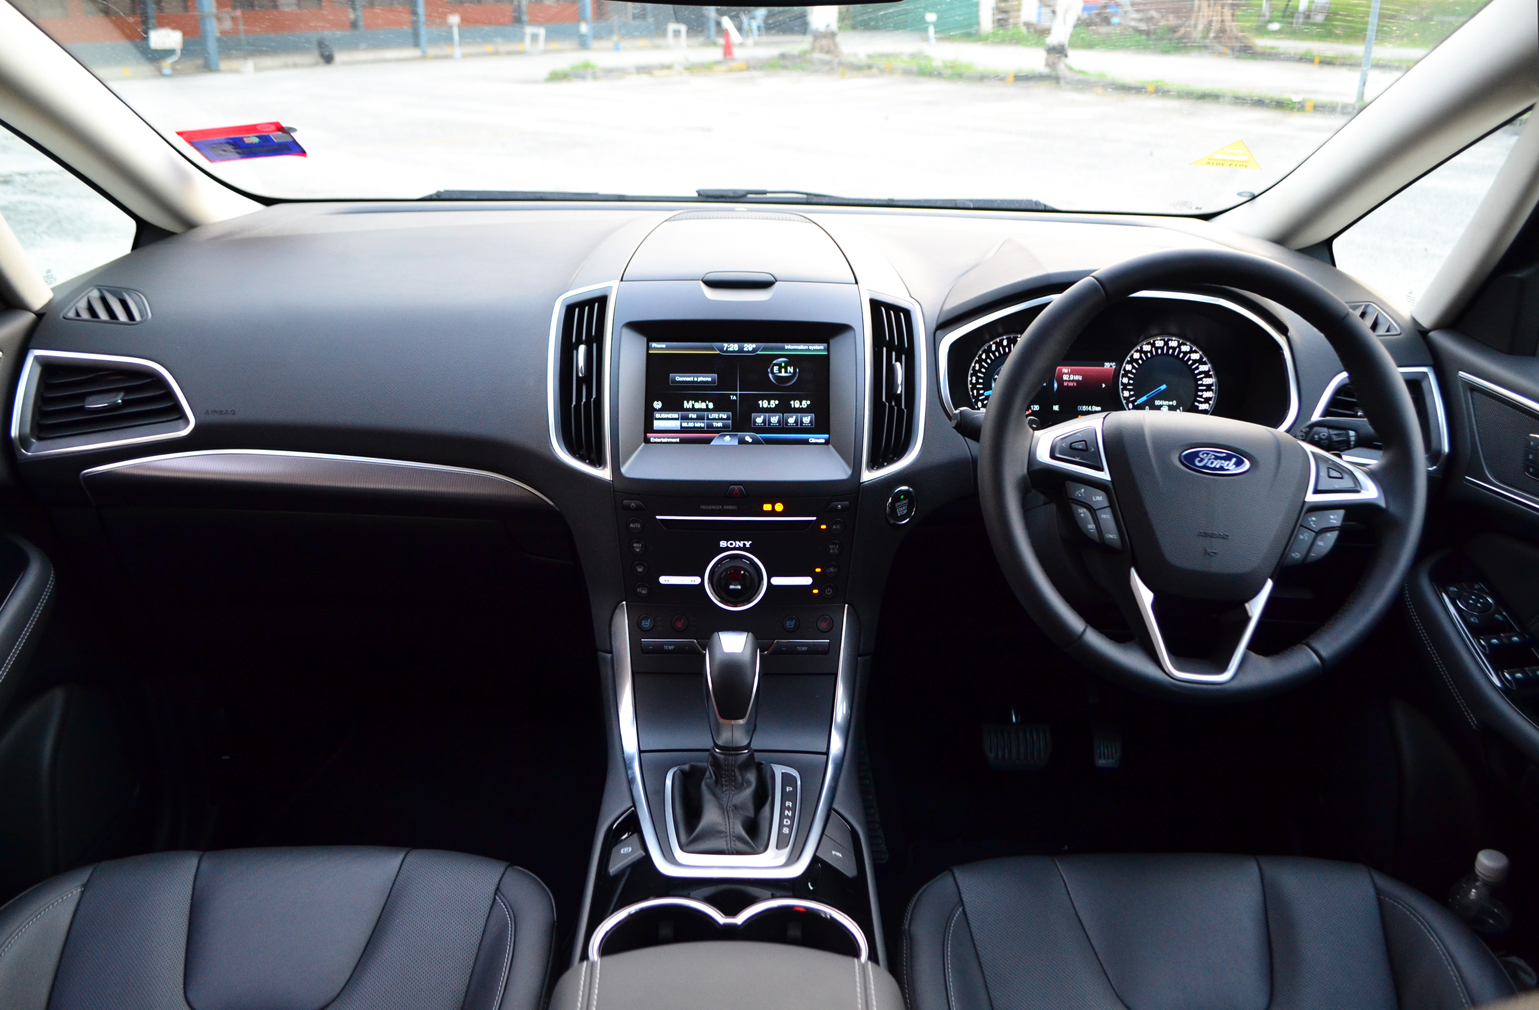 The All-New Ford S-Max - Test Drive Review - kensomuse